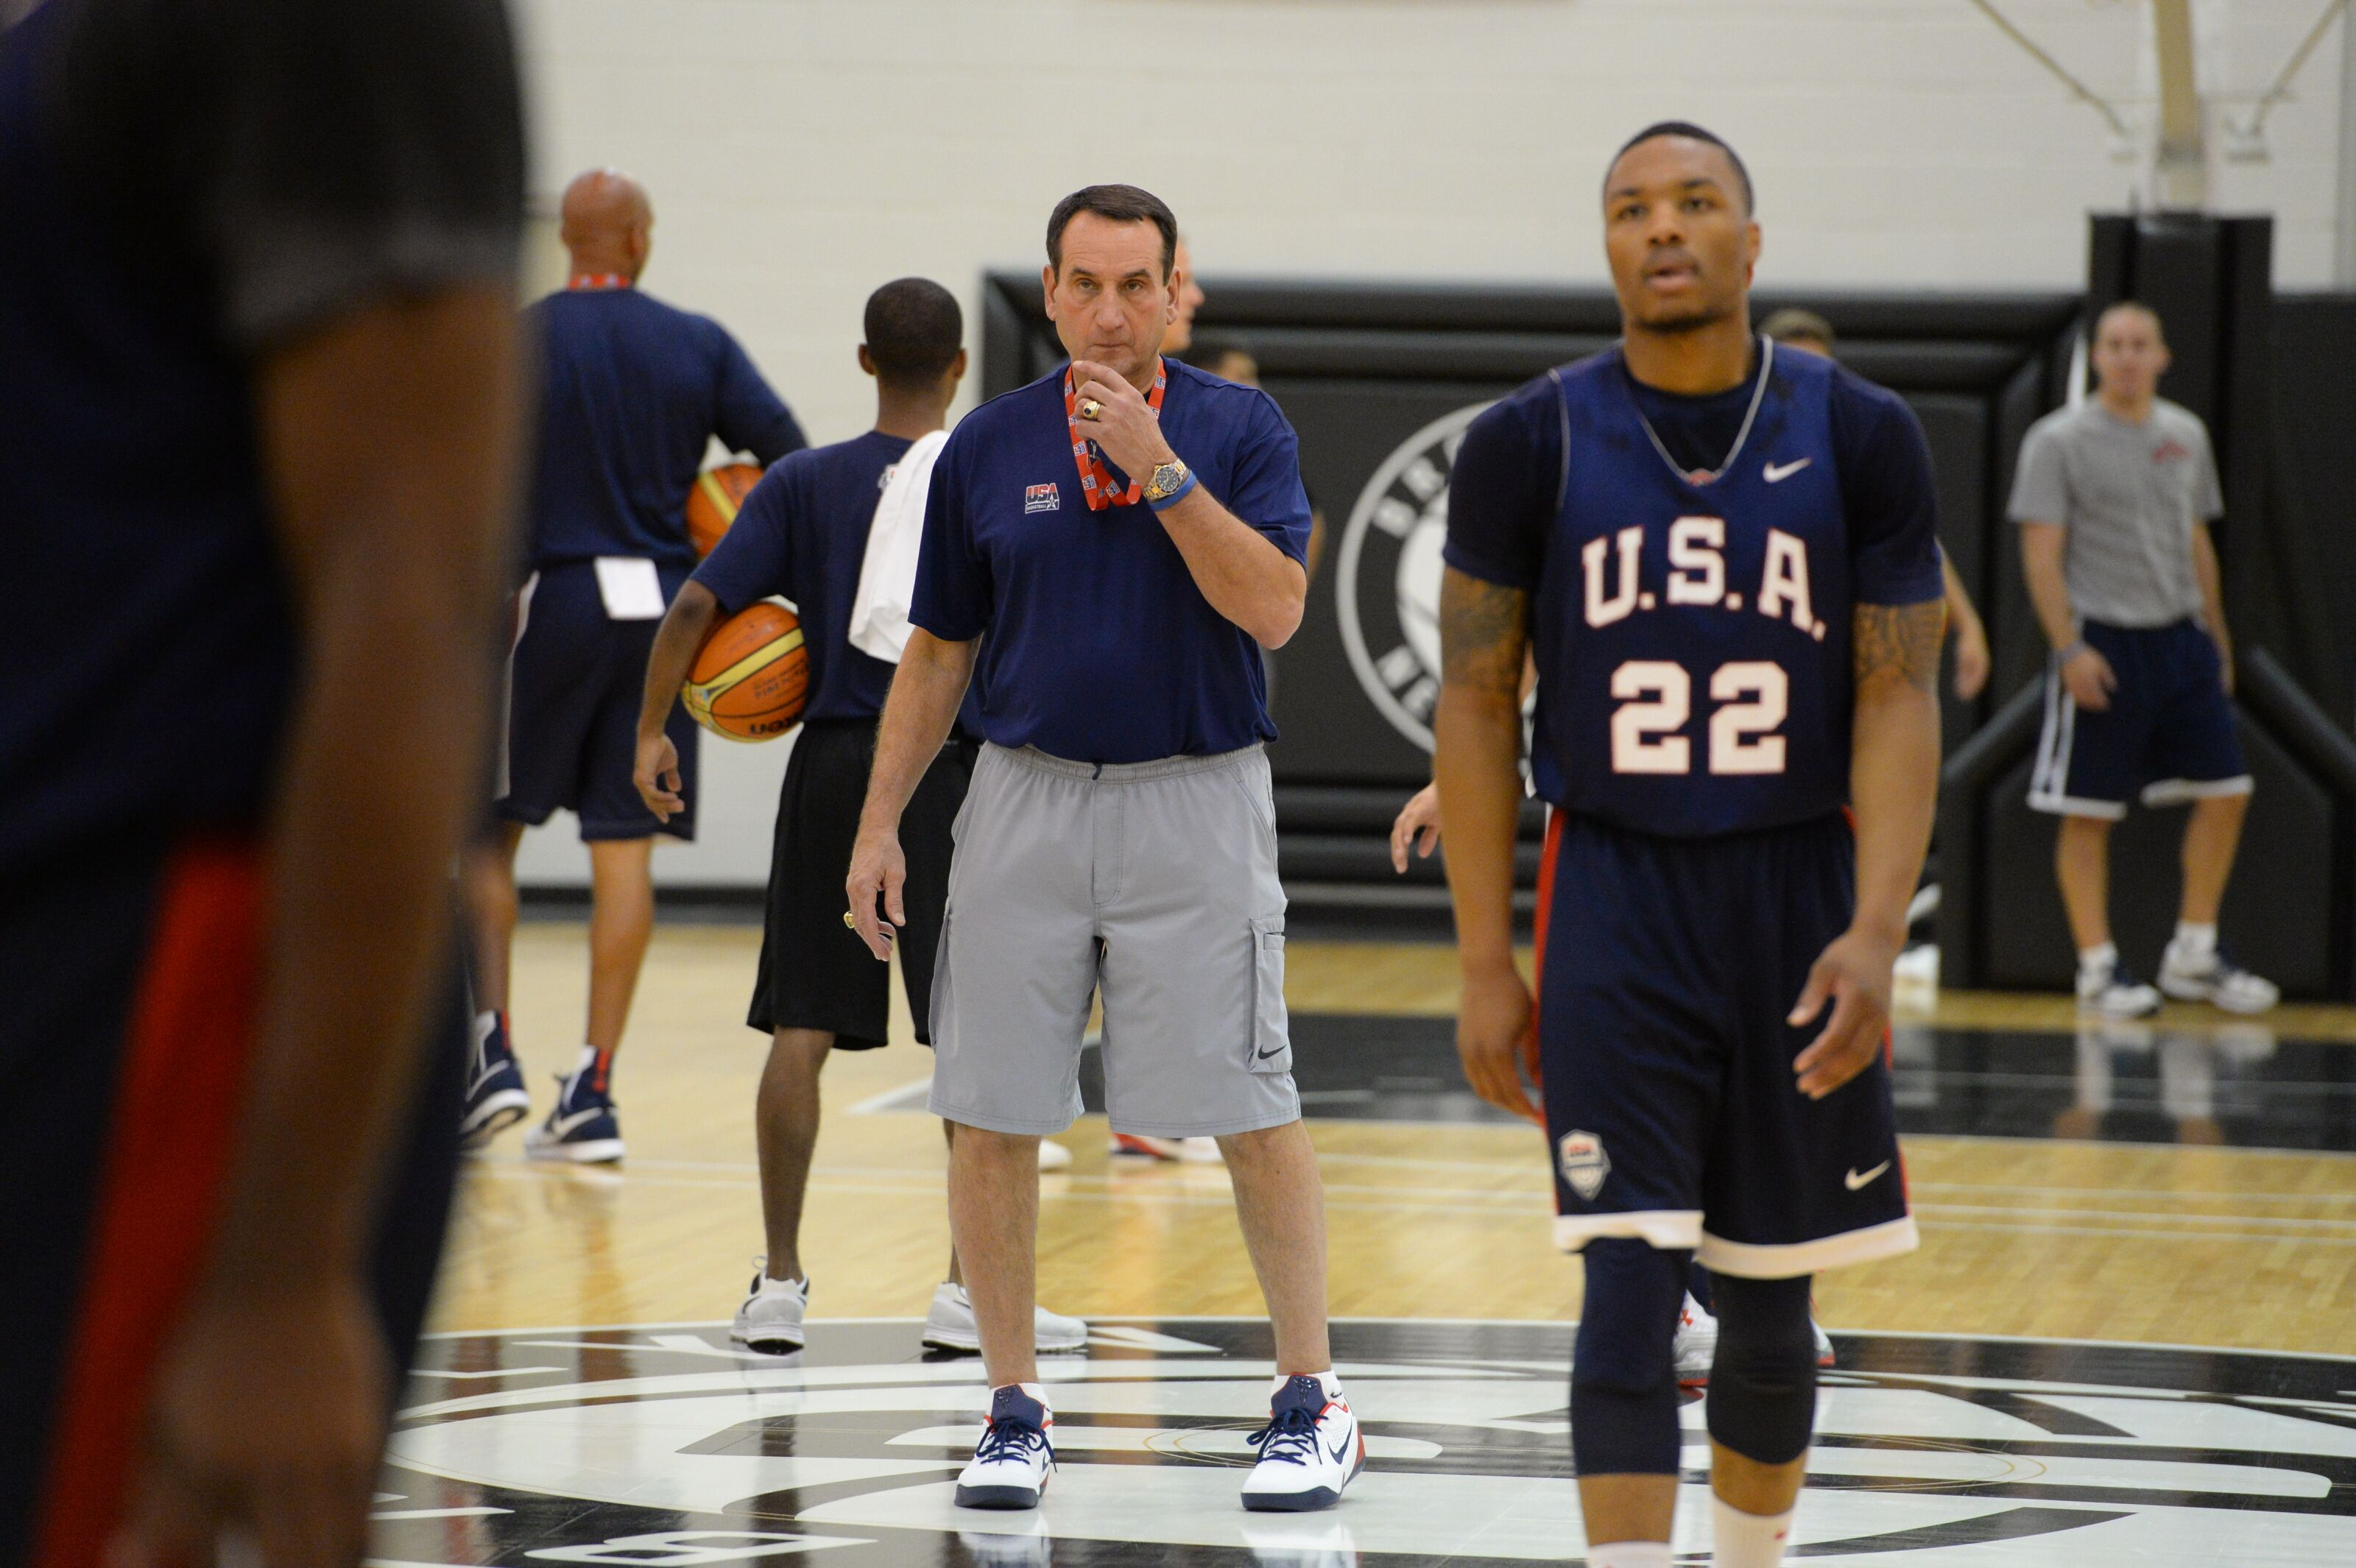 Could the Portland Trail Blazers beat Team USA?